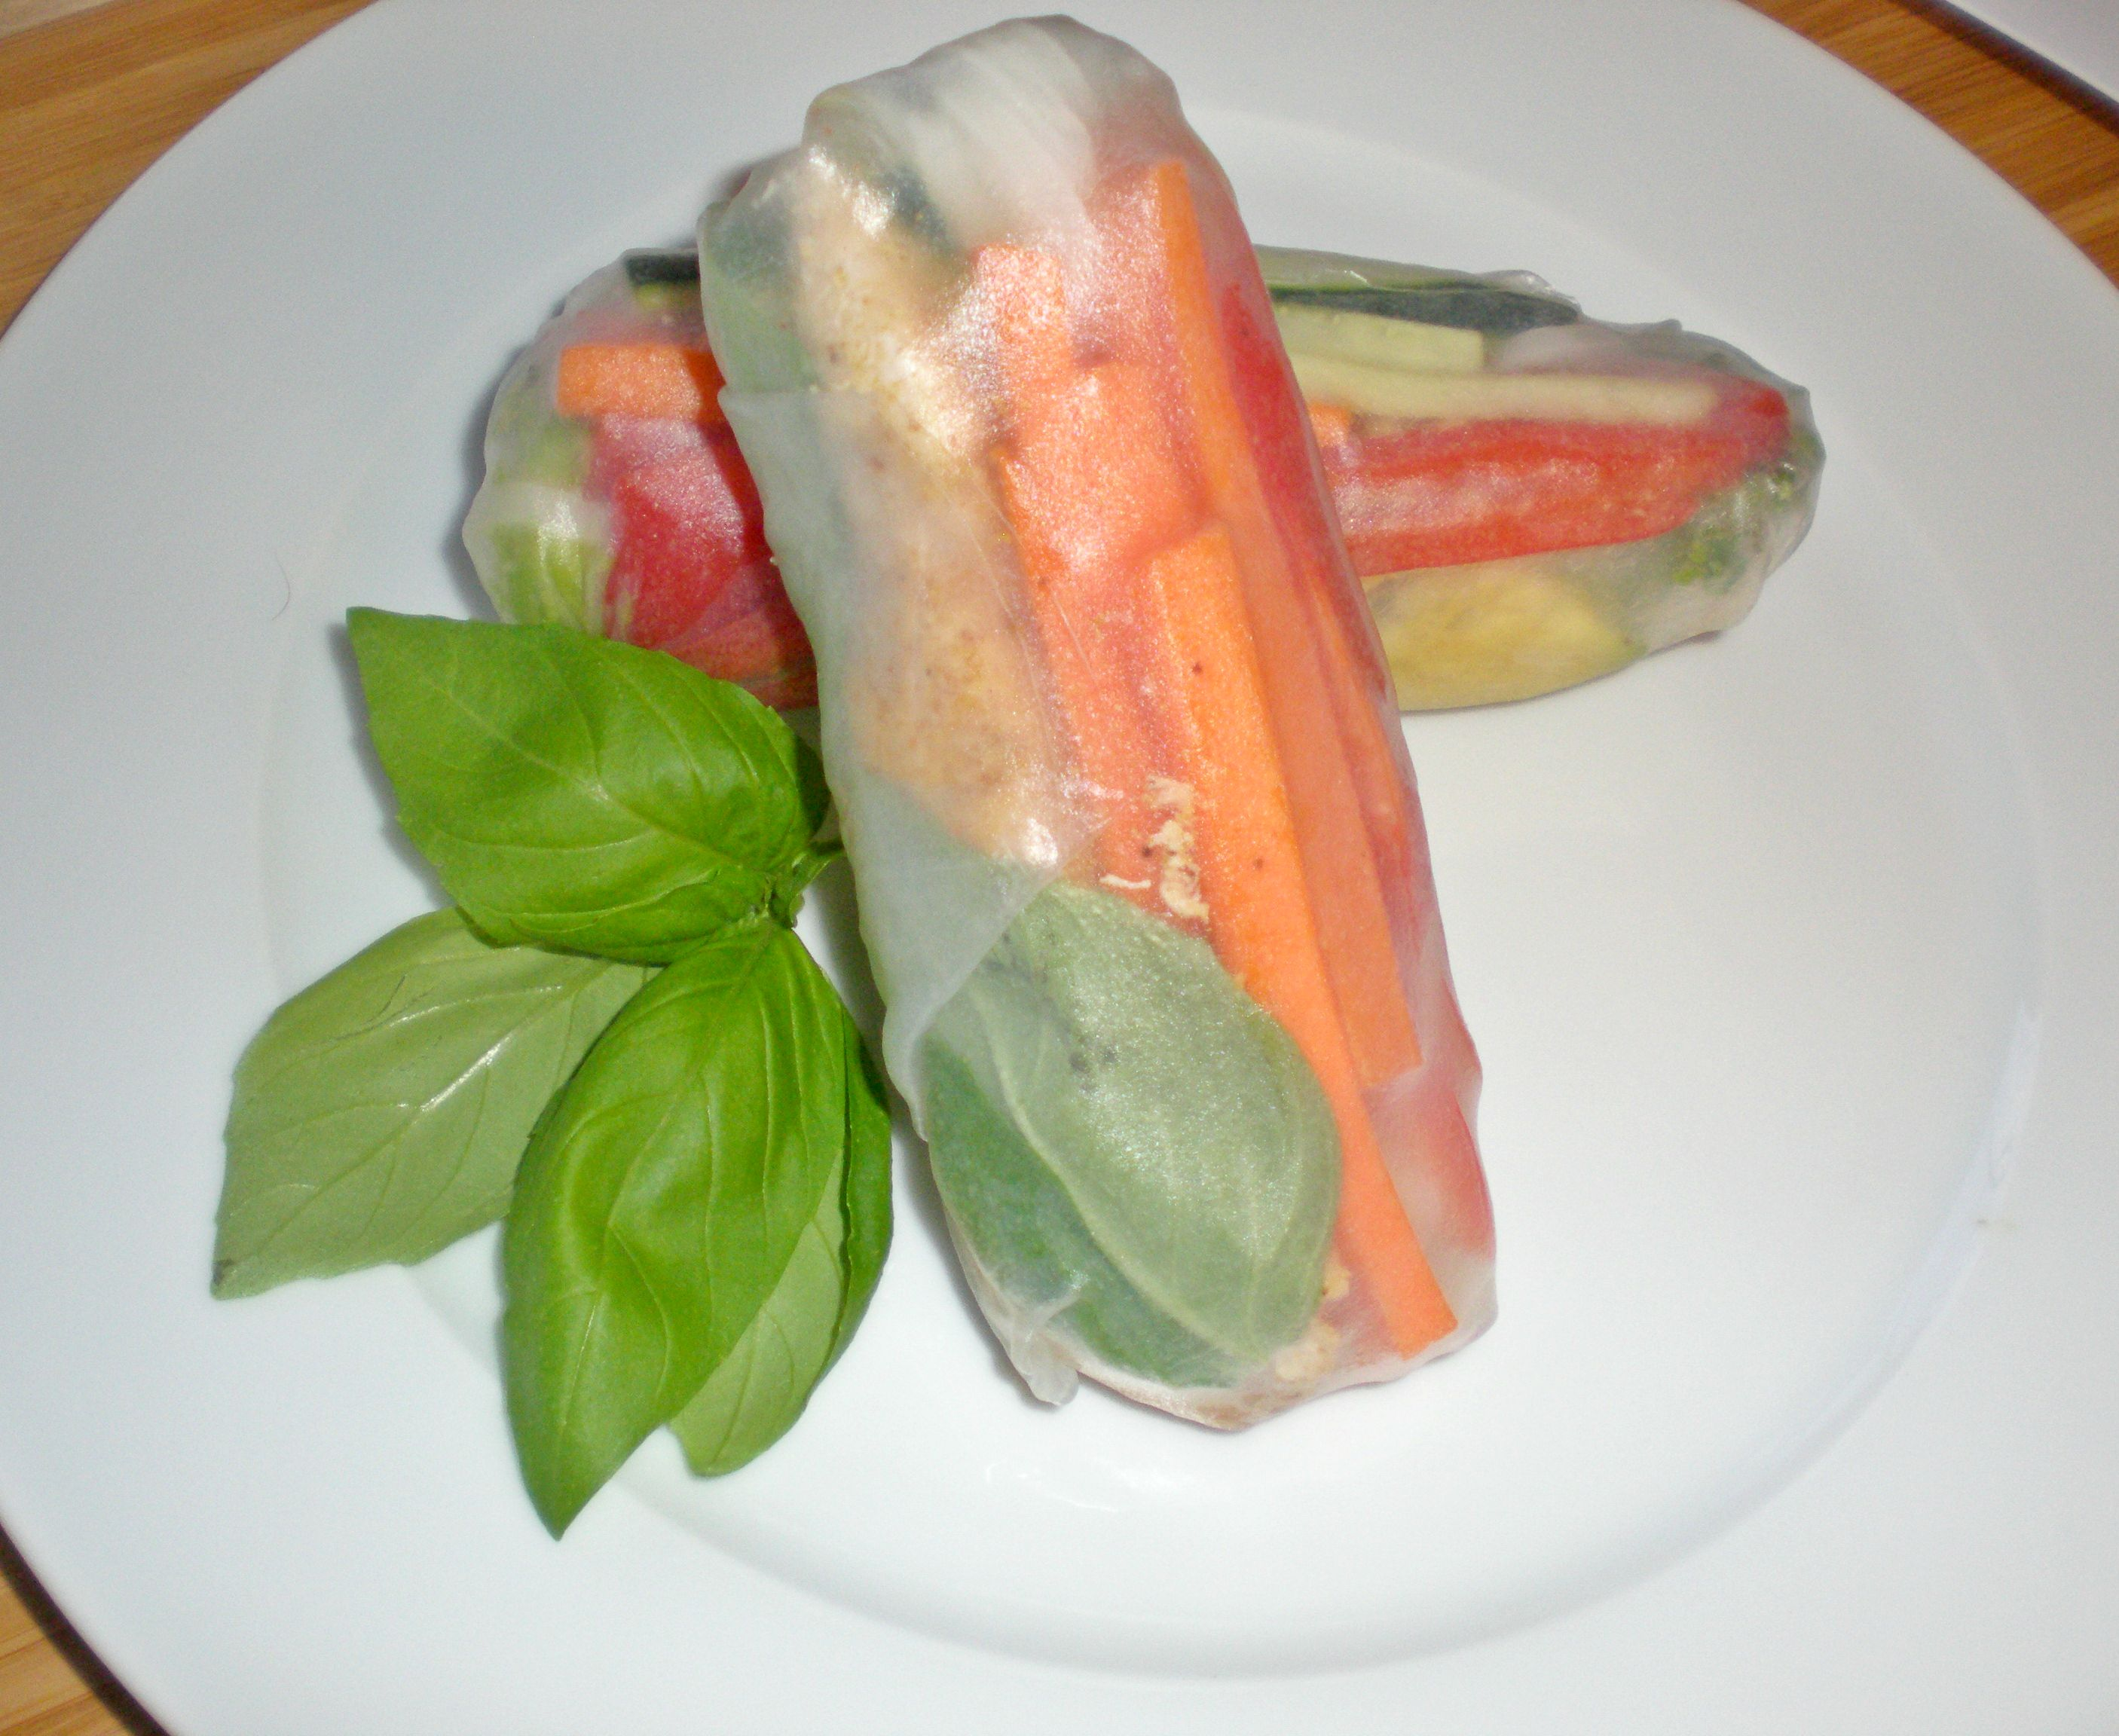 Spring Rolls with Chicken, Veggies, and Maple Almond Butter Sauce